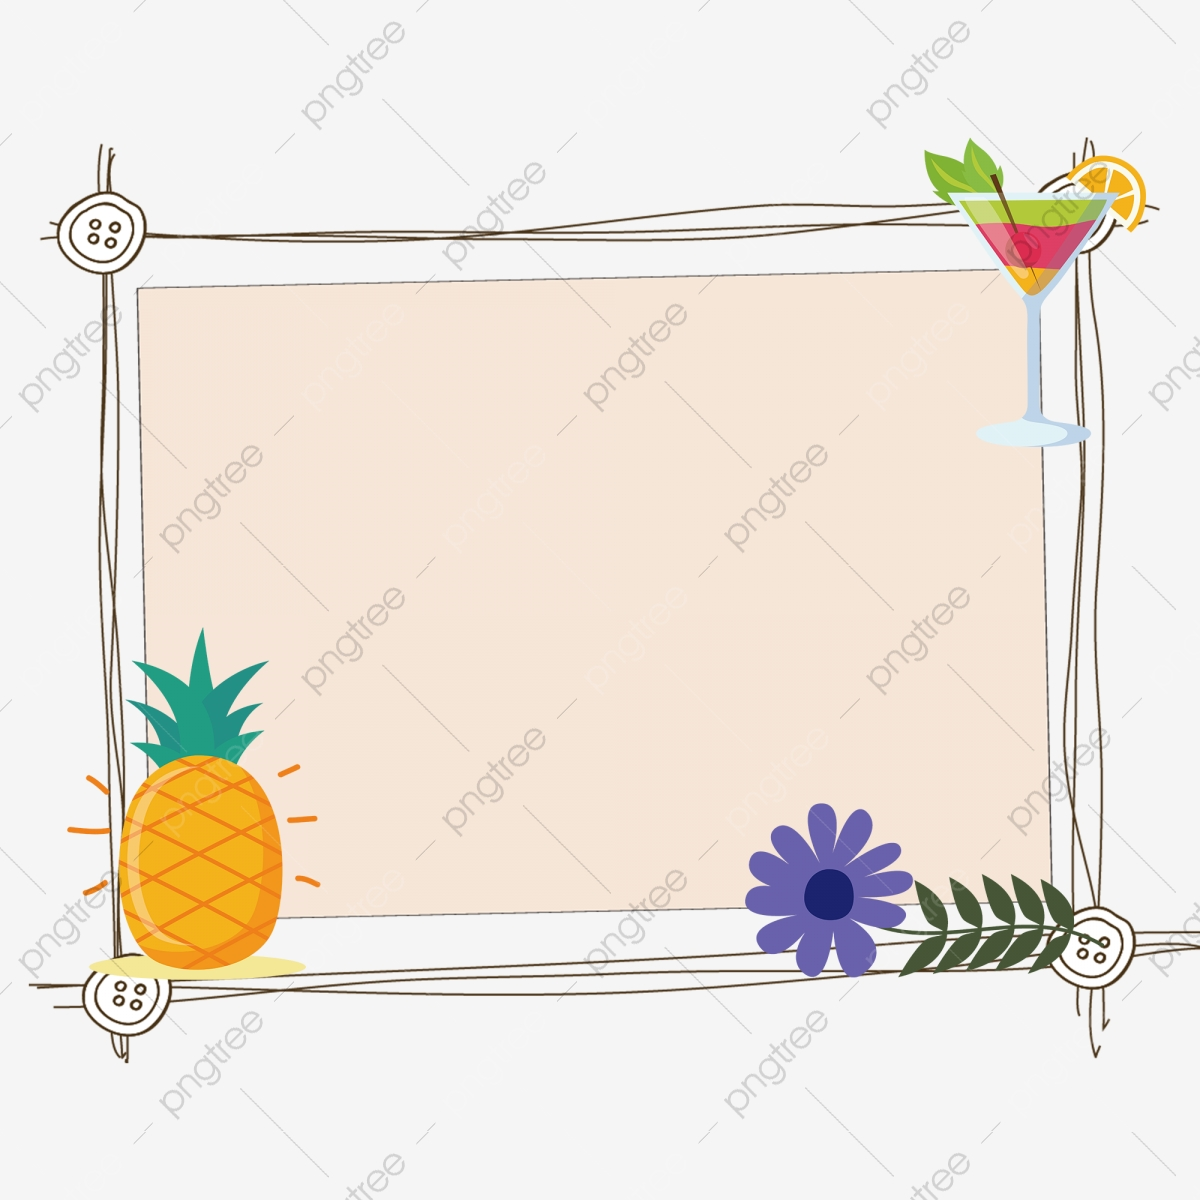 Beautiful border bunting . Pineapple clipart frame